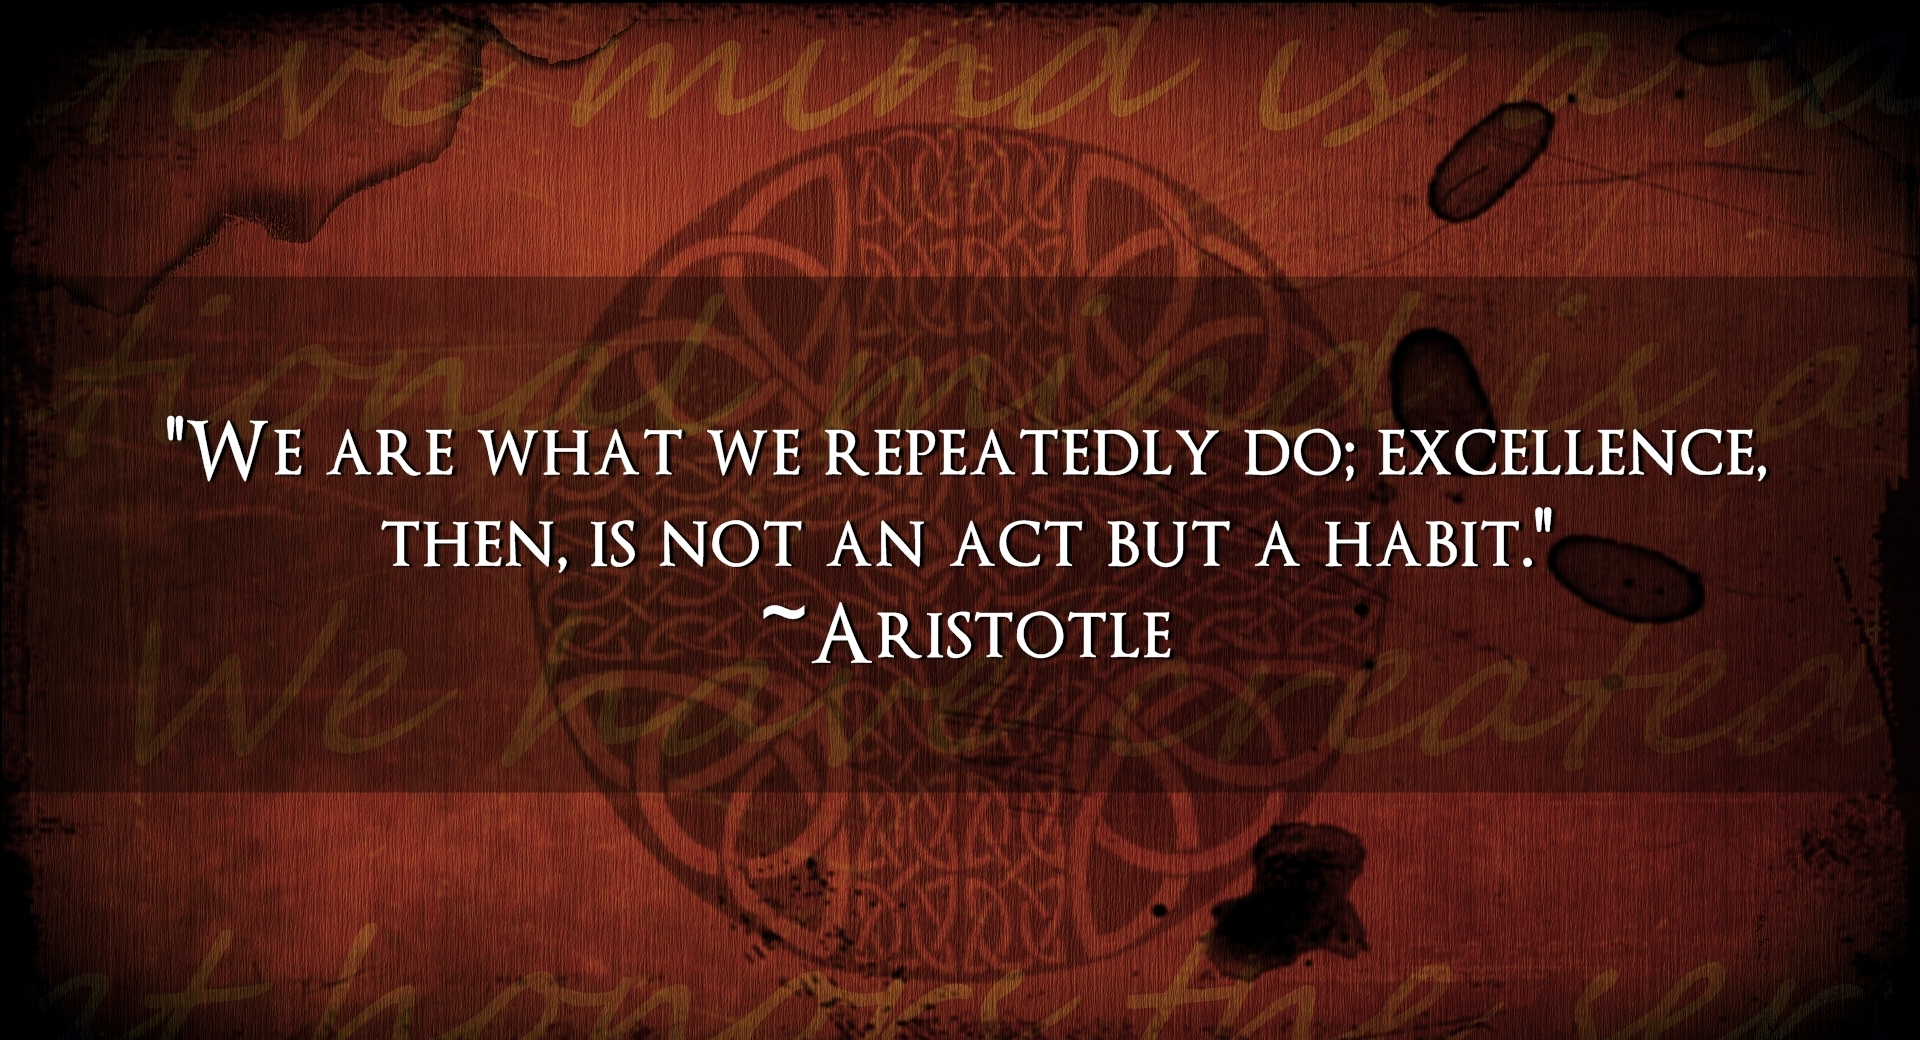 Pftw Aristotle Quote: Famous Quotes From Aristotle